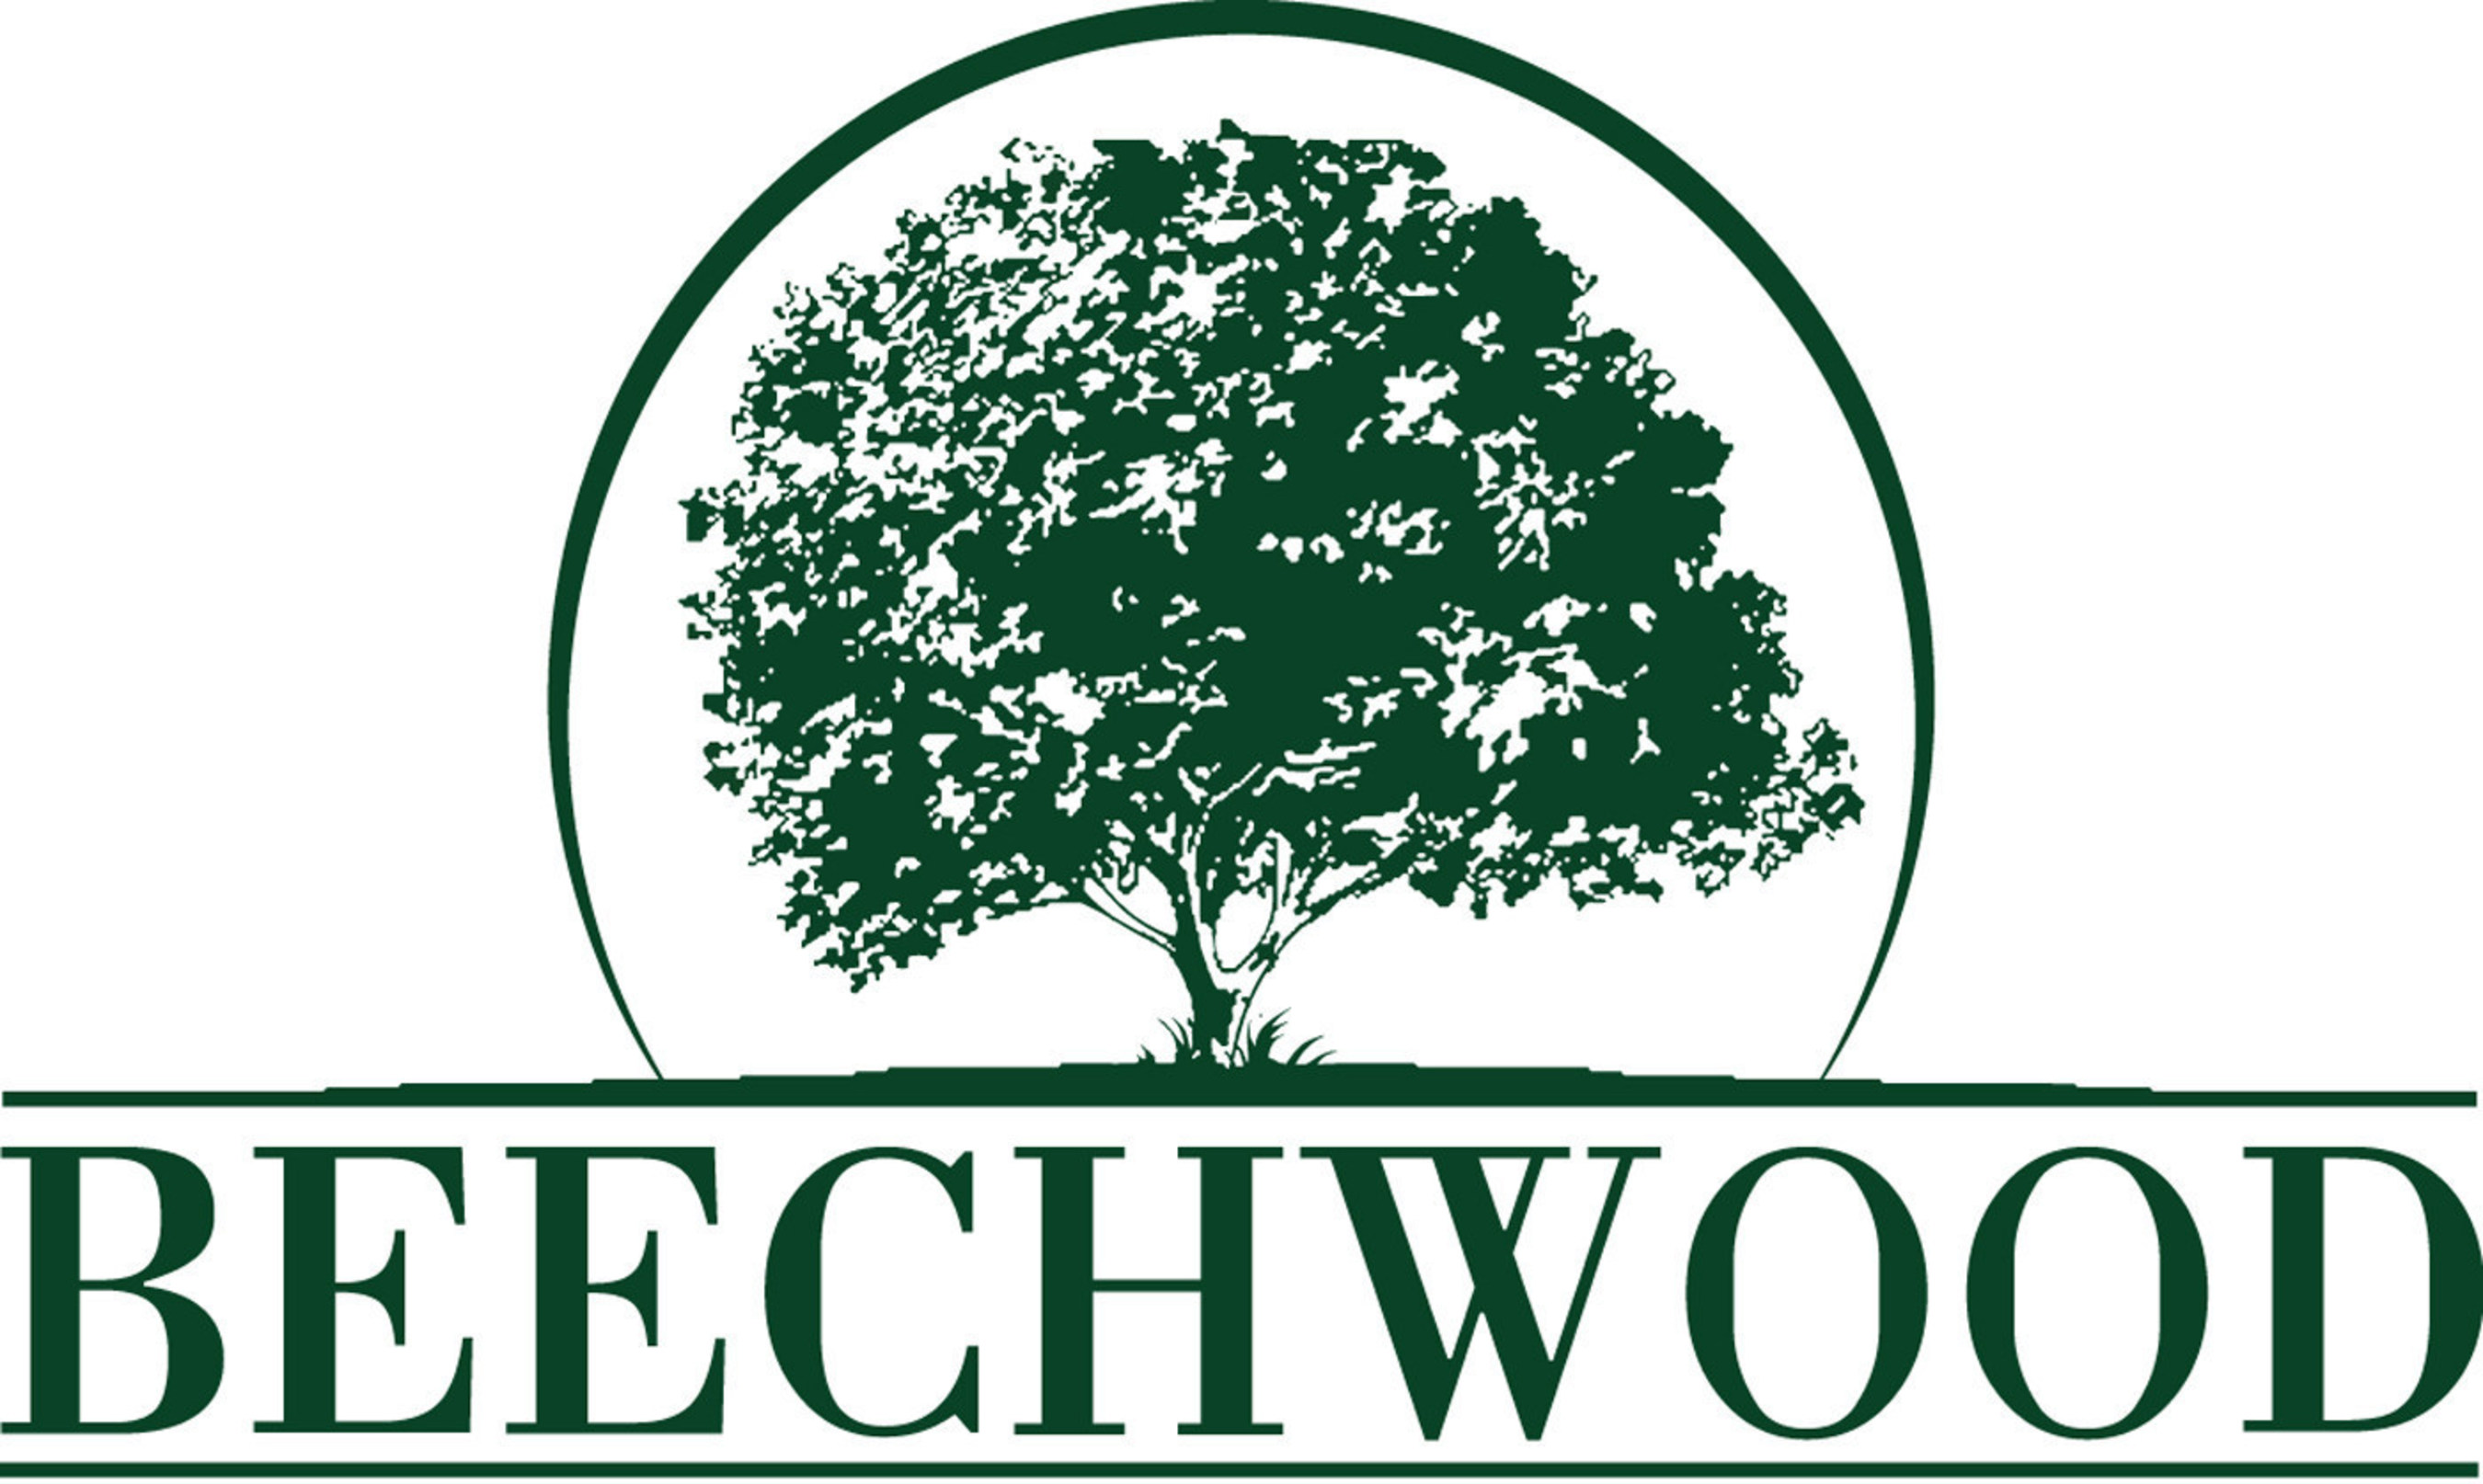 Beechwood to acquire old mutual bermuda for The beechwood